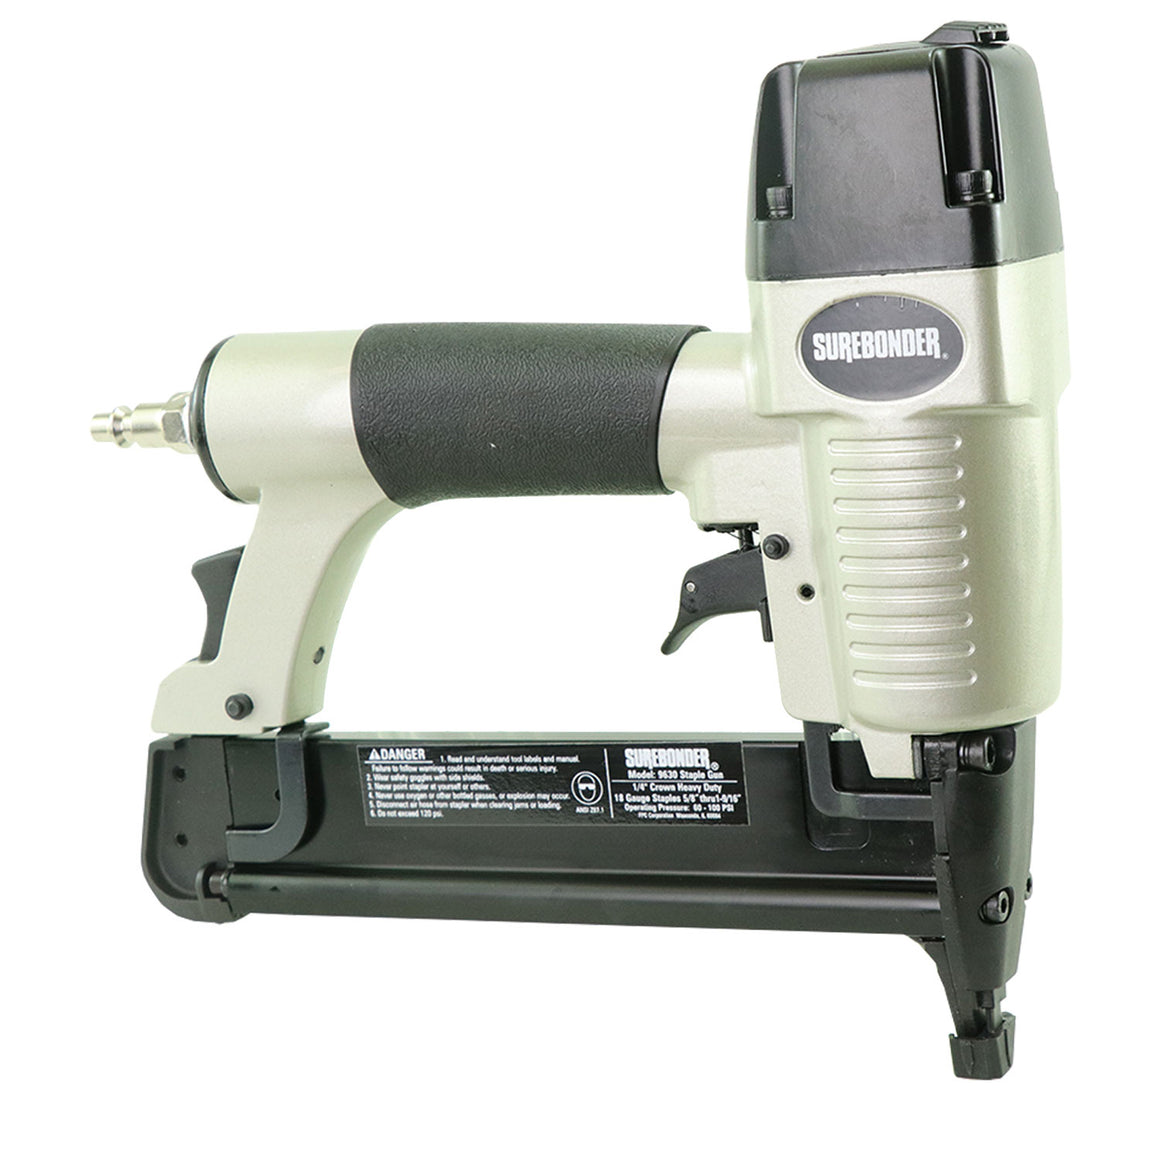 Pneumatic 18 Gauge Stapler with Case